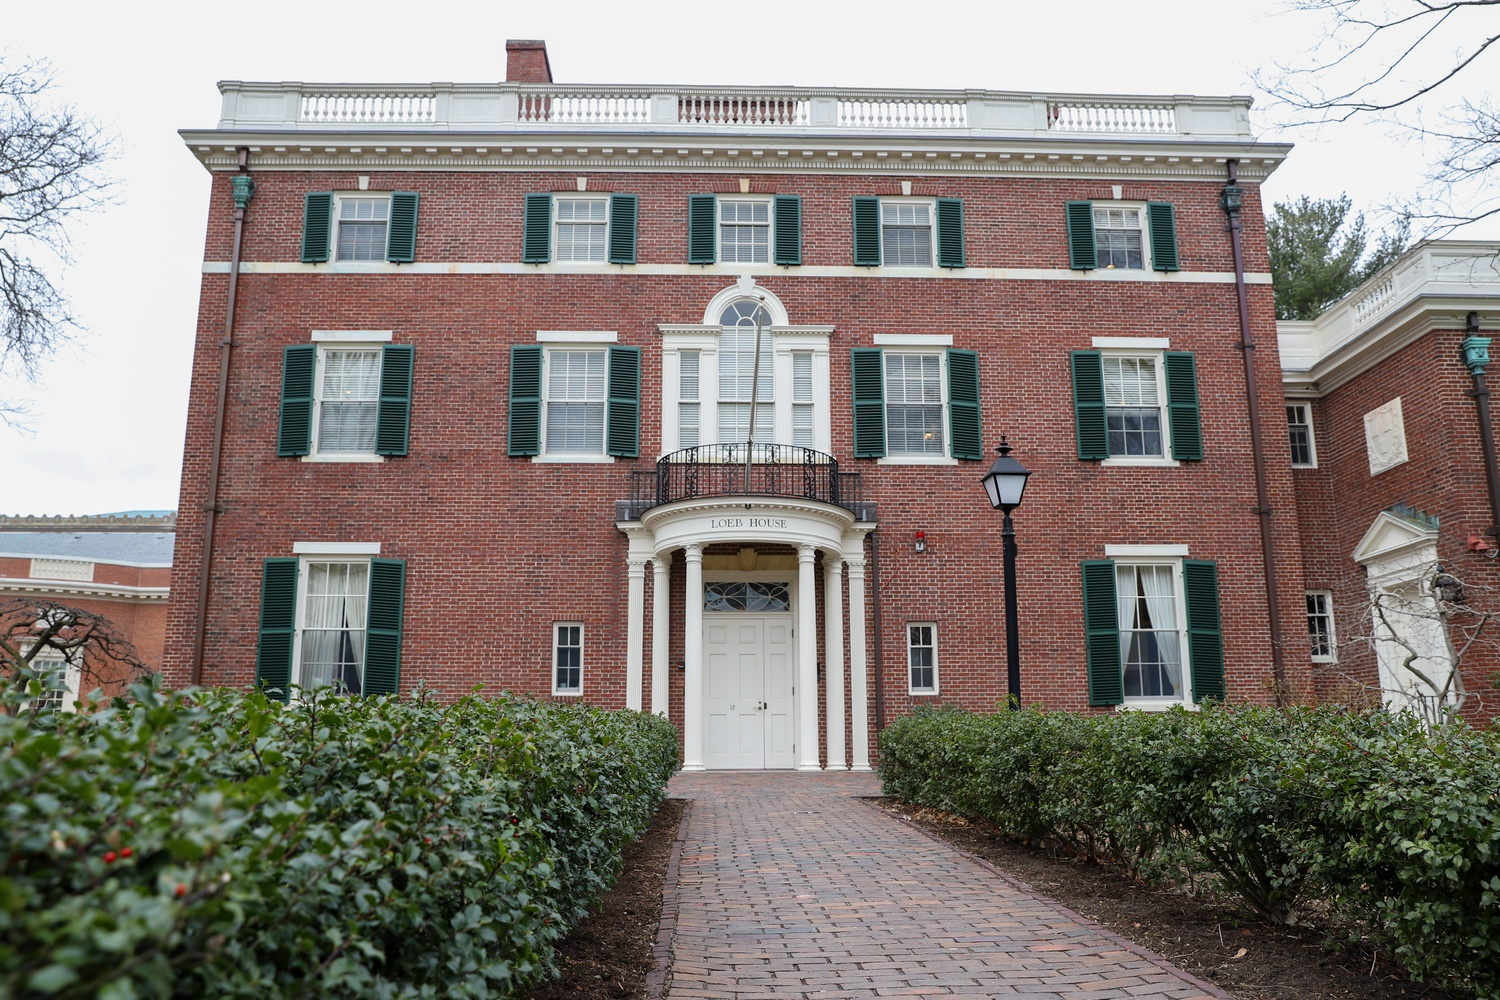 Many of Harvard's governing boards, including the Board of Overseers, met in Loeb House before the COVID-19 pandemic.